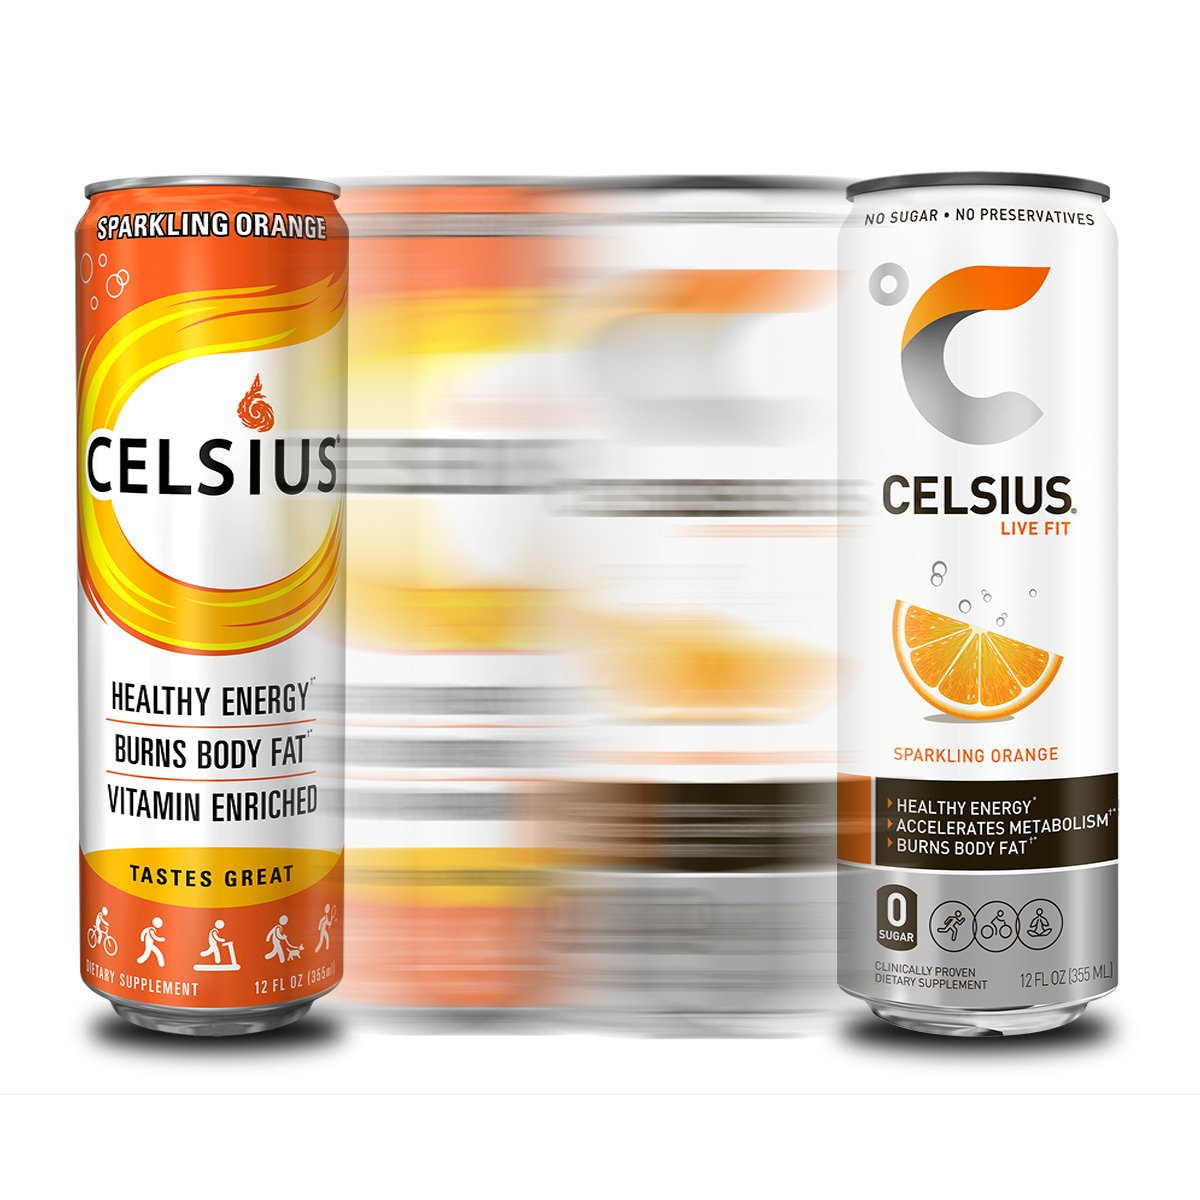 RT @CelsiusOfficial: STOP EVERYTHING. CELSIUS has a new look and we are committed to LIVE FIT! #CELSIUSlife https://t.co/7gkOKbR6WZ